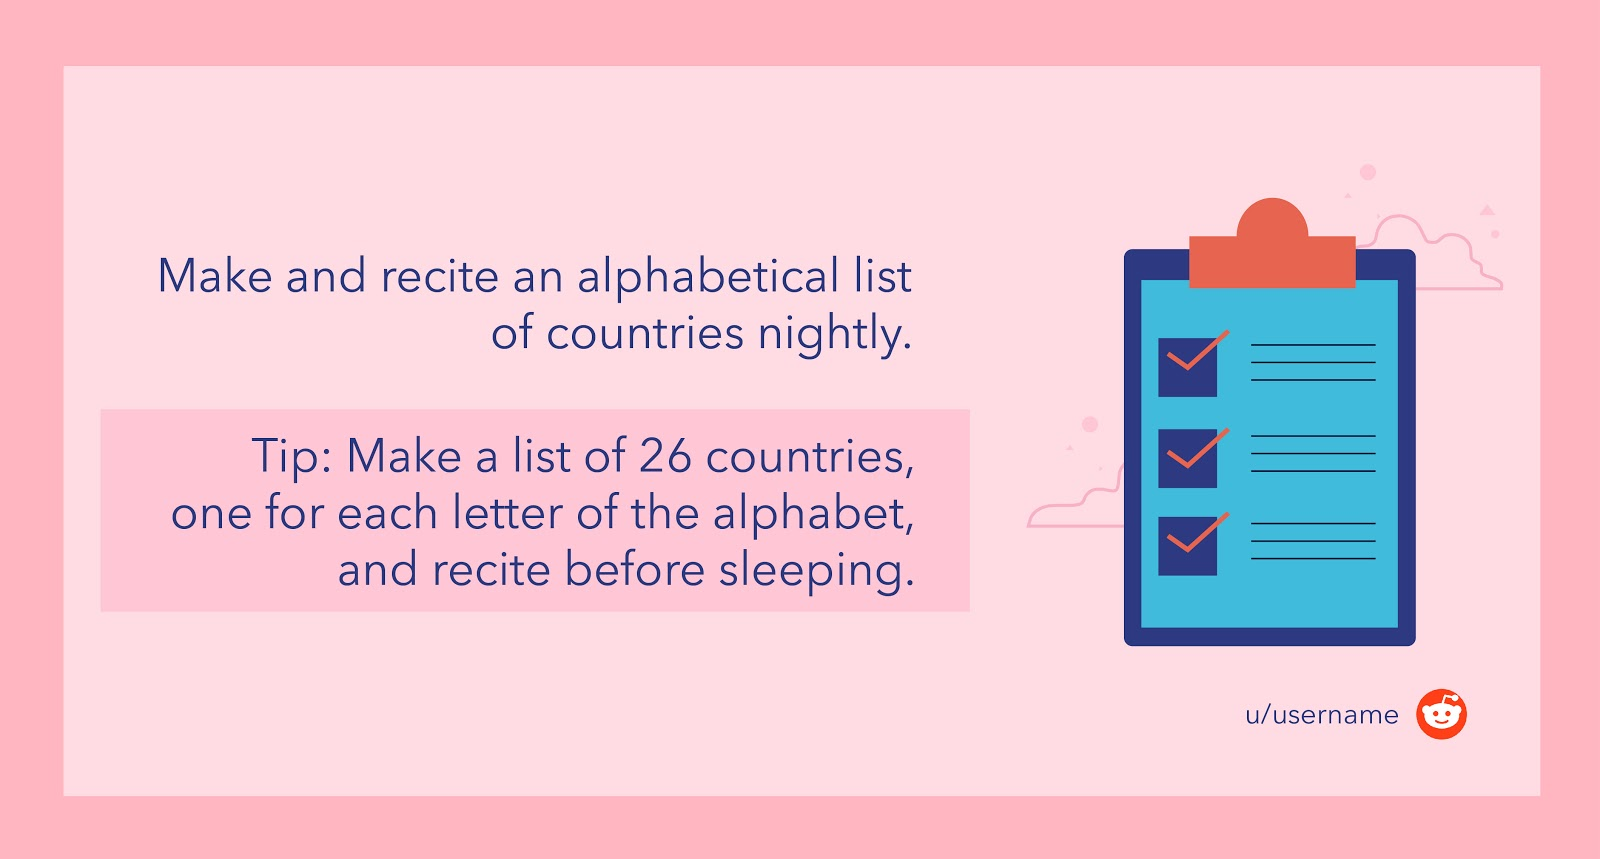 Make a list of 26 countries, one for each letter of the alphabet, and recite before sleeping.